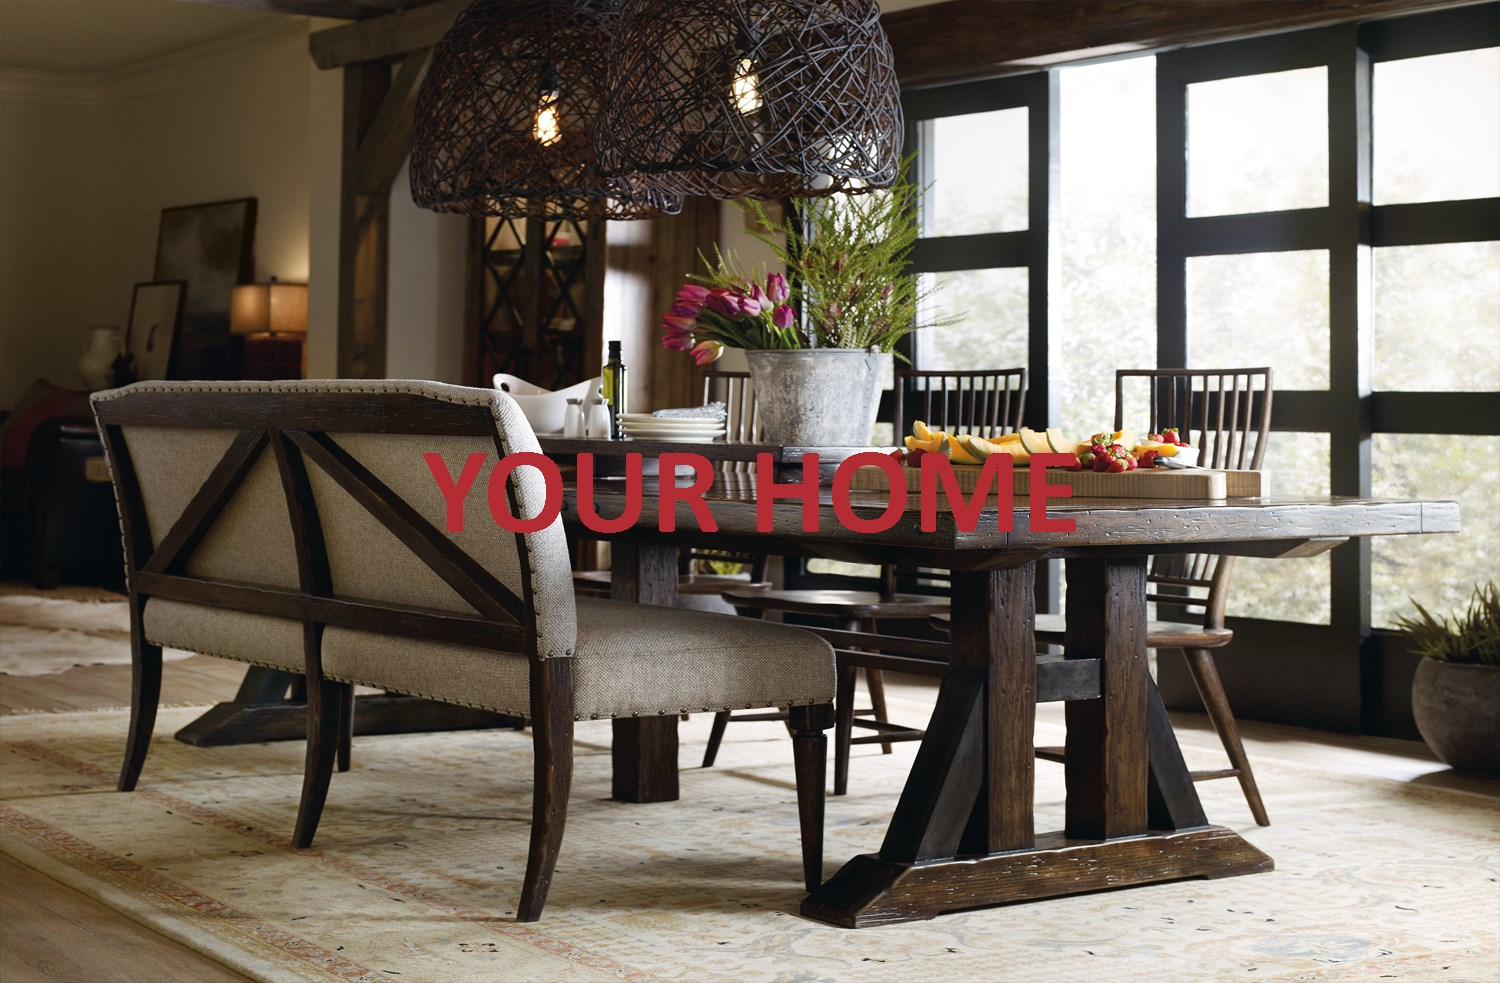 Reeds Furniture Los Angeles Thousand Oaks Simi Valley